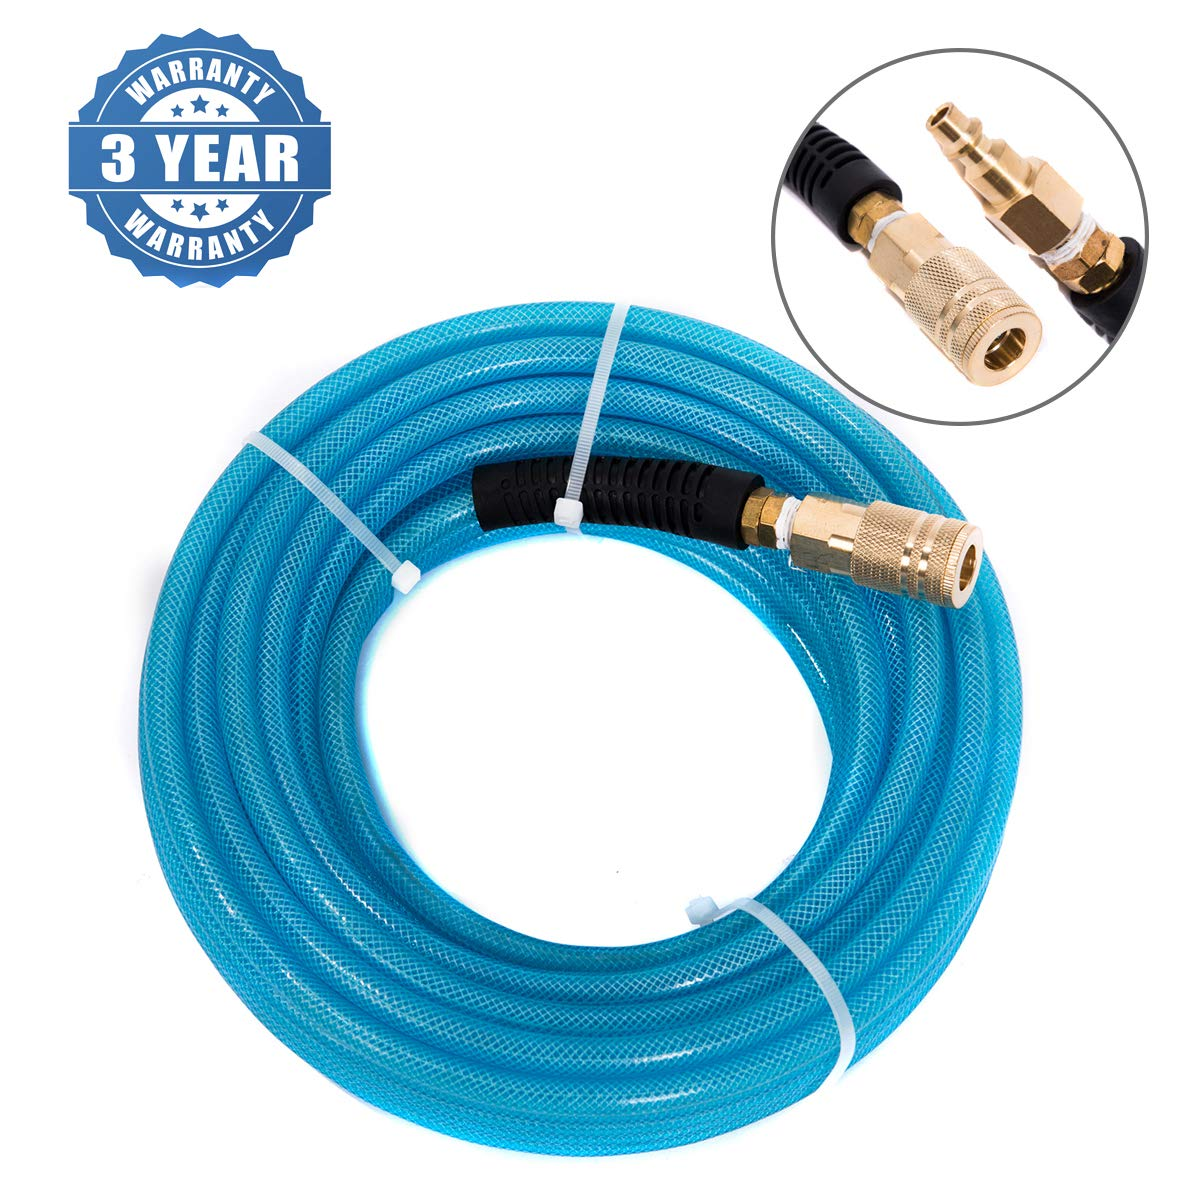 100Ft Air Hose 1/4 in ID, 300 PSI, Polyurethane (PU) Hoses with 1/4 in Quick Connect Plug & Coupler Fittings Blue